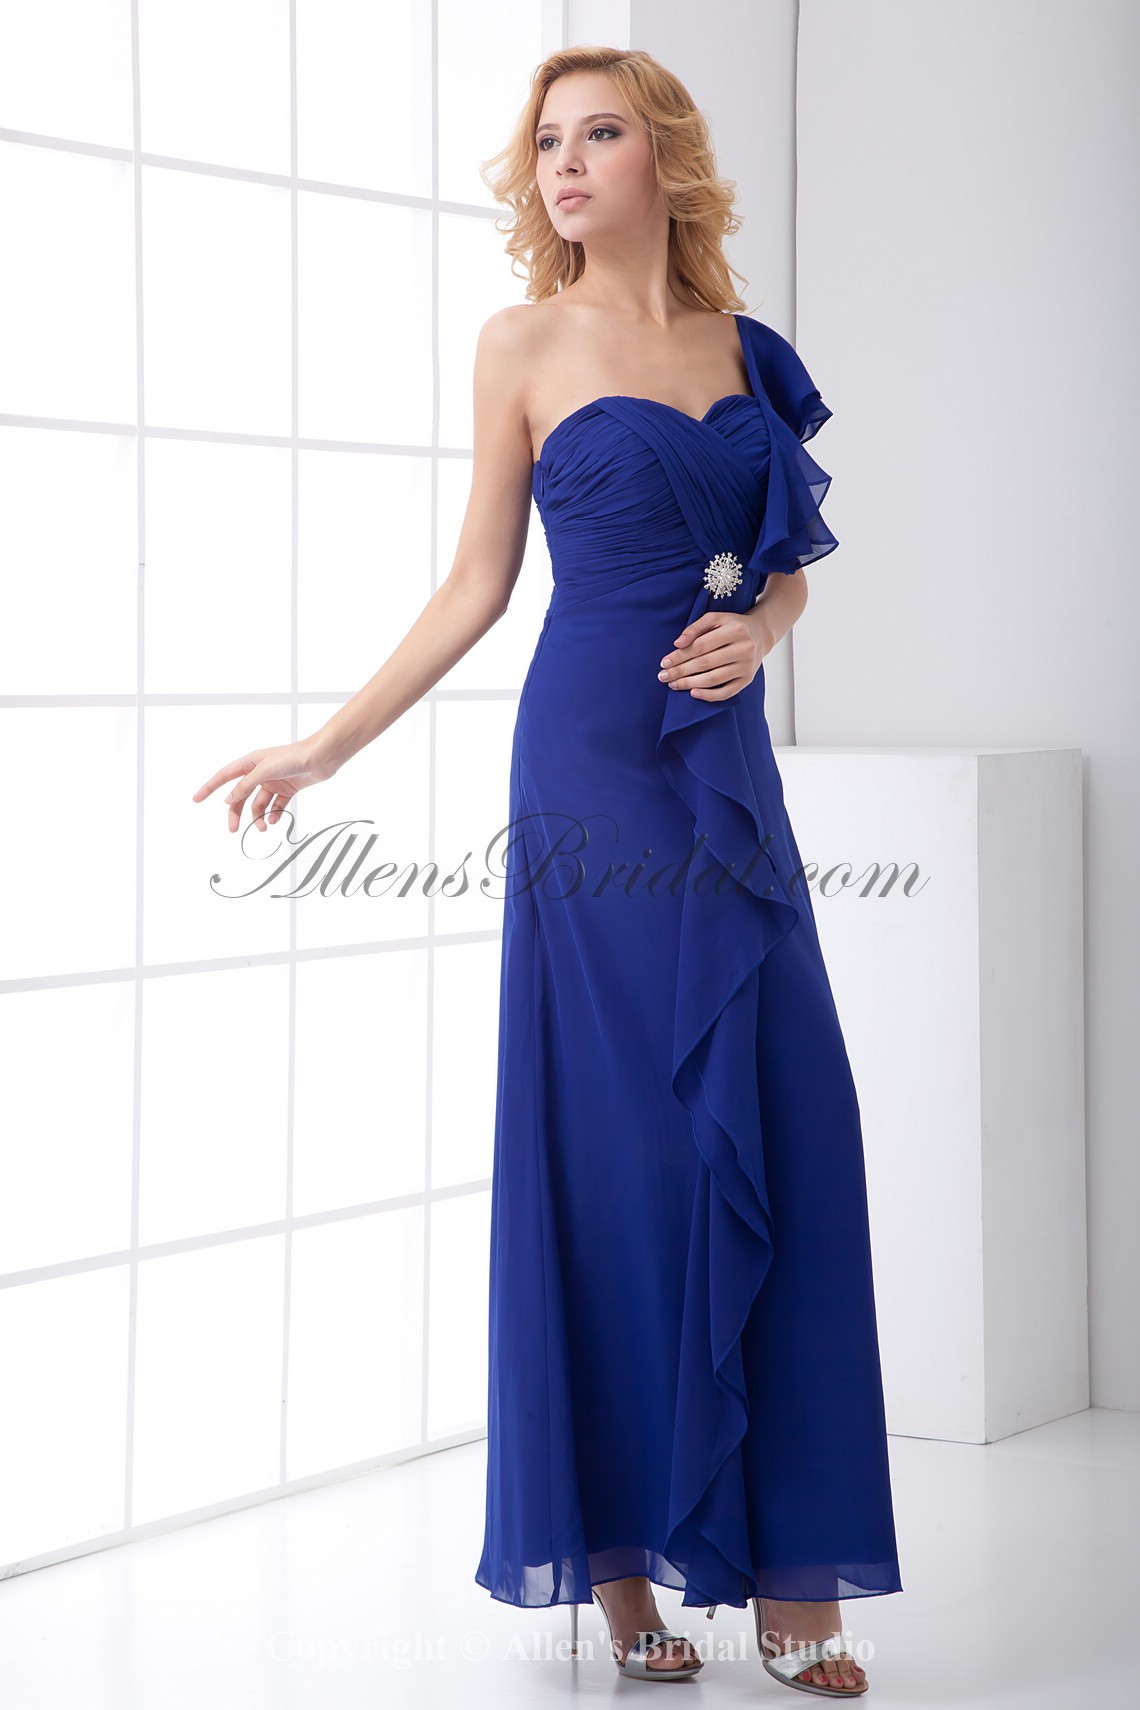 /200-1596/chiffon-one-shoulder-column-ankle-length-ruffle-prom-dress.jpg